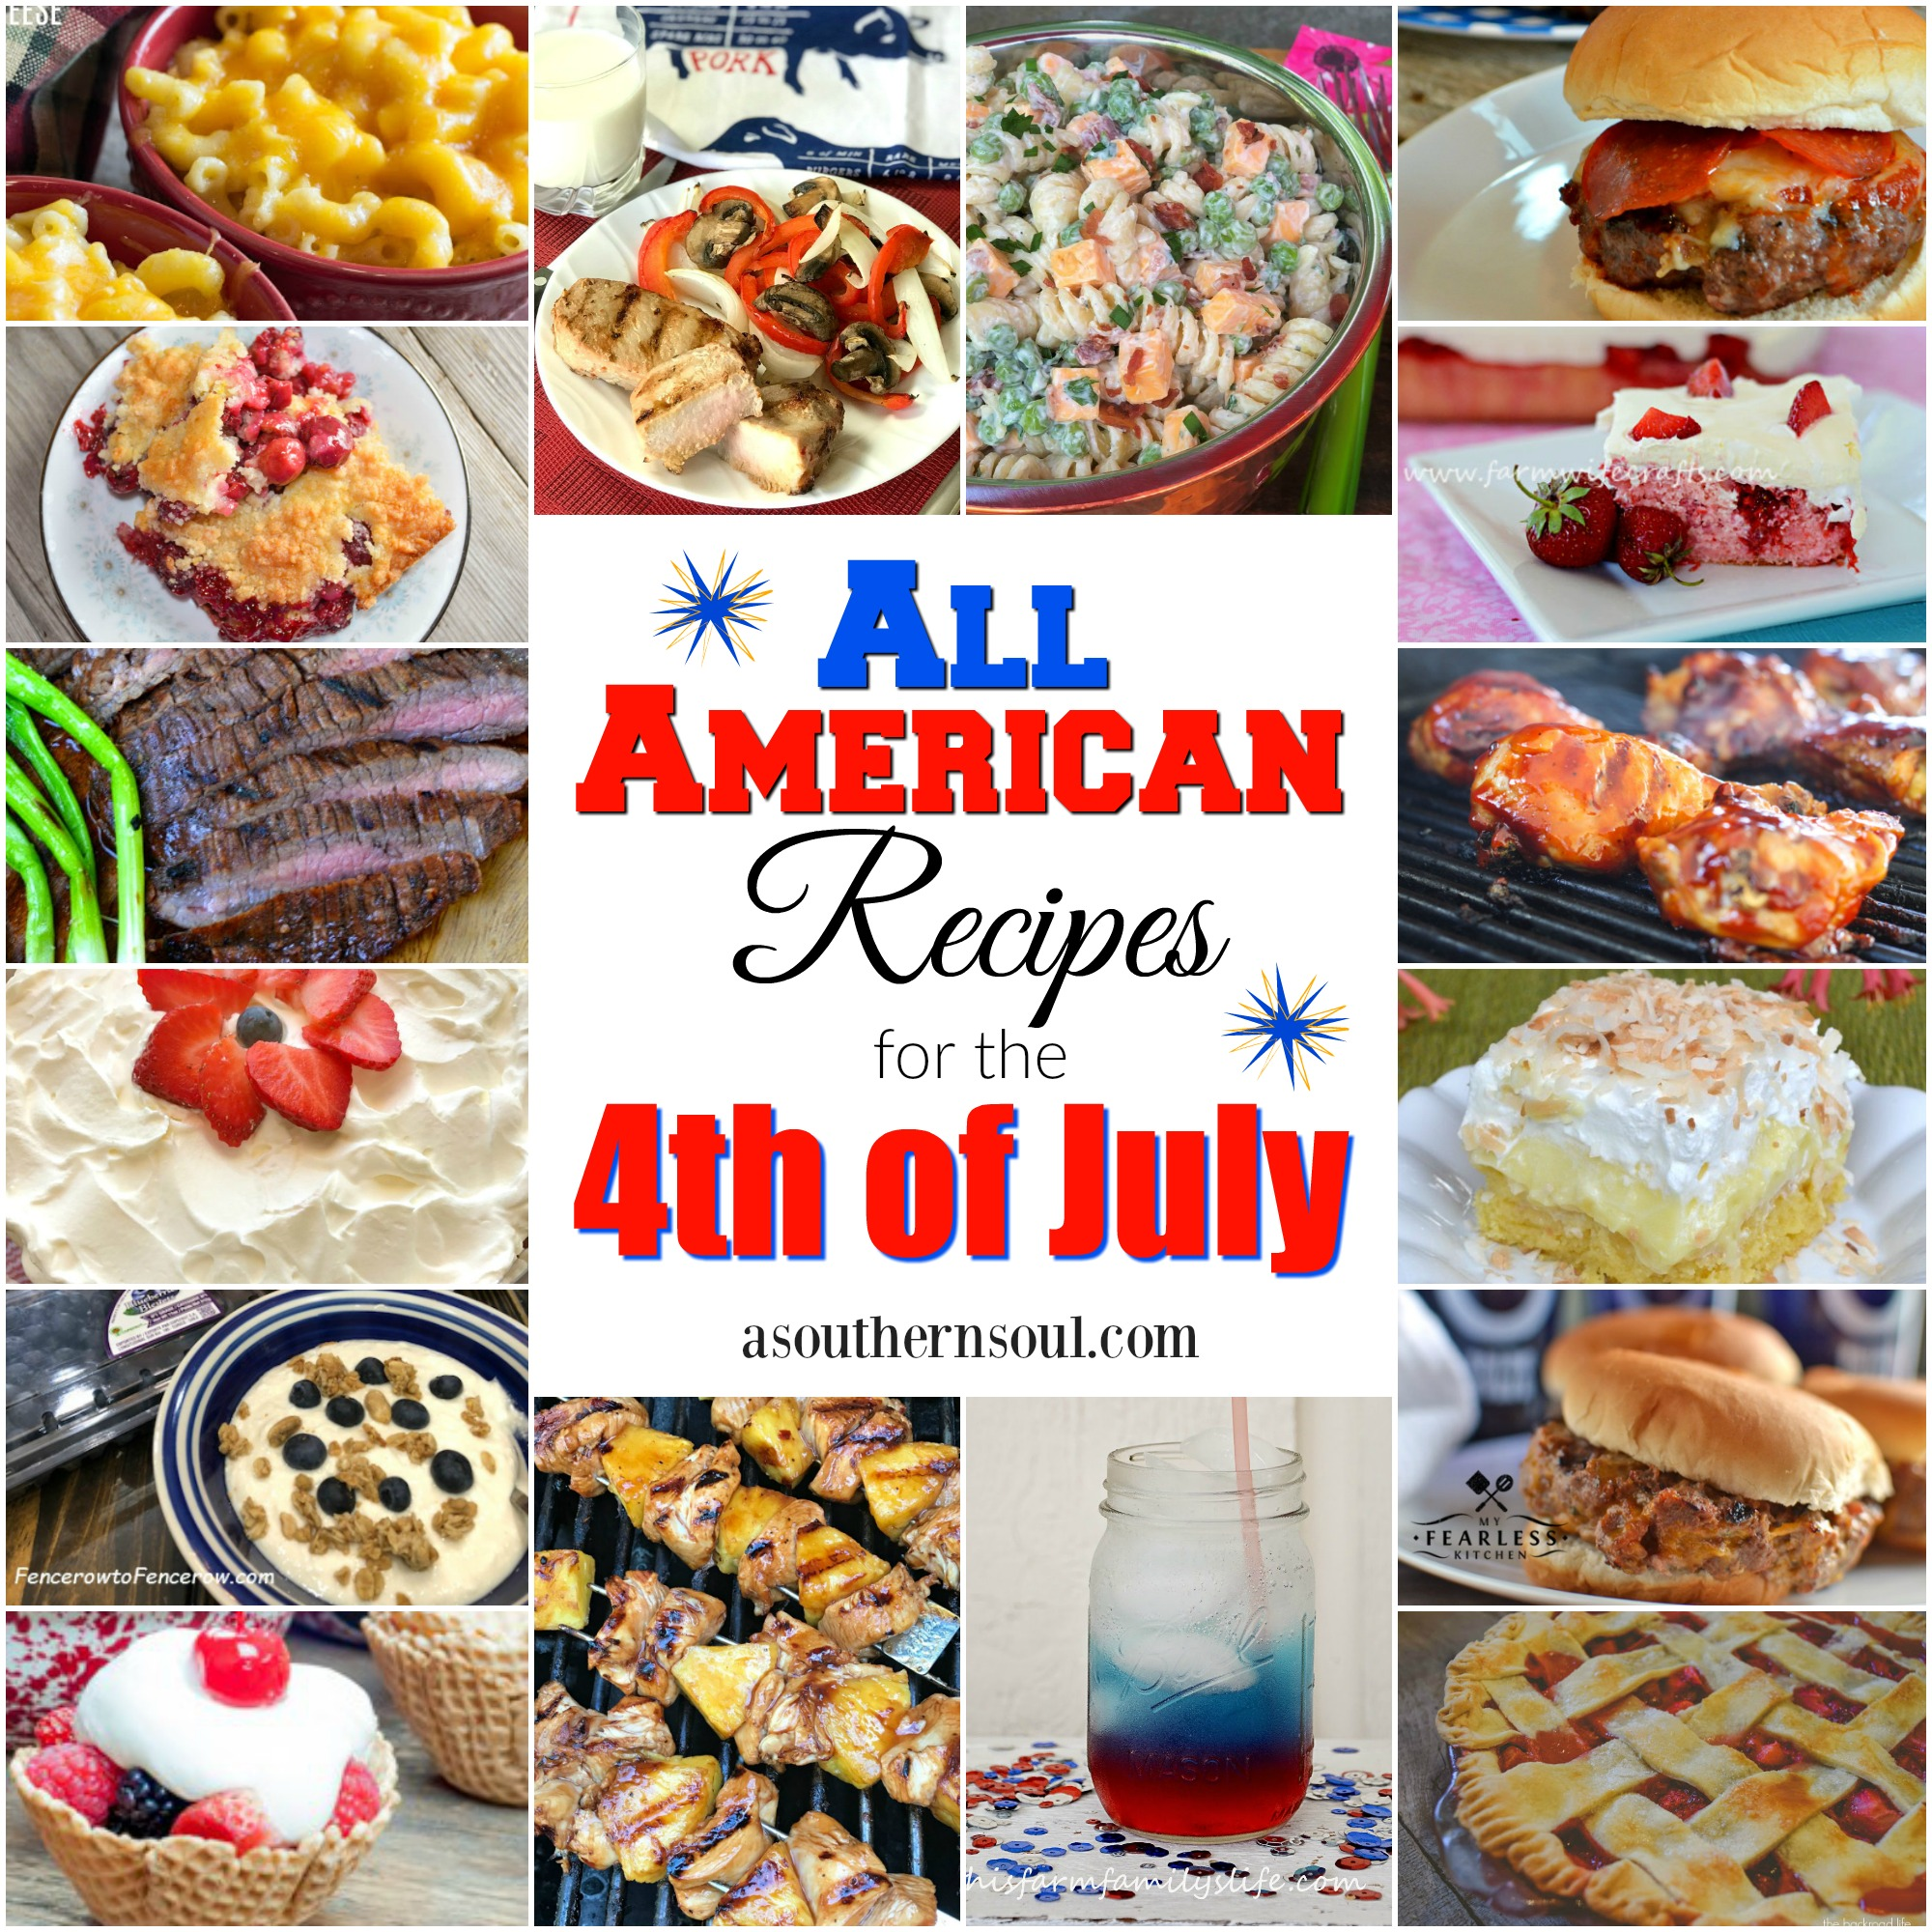 All American Recipes for the 4th of July - A Southern Soul